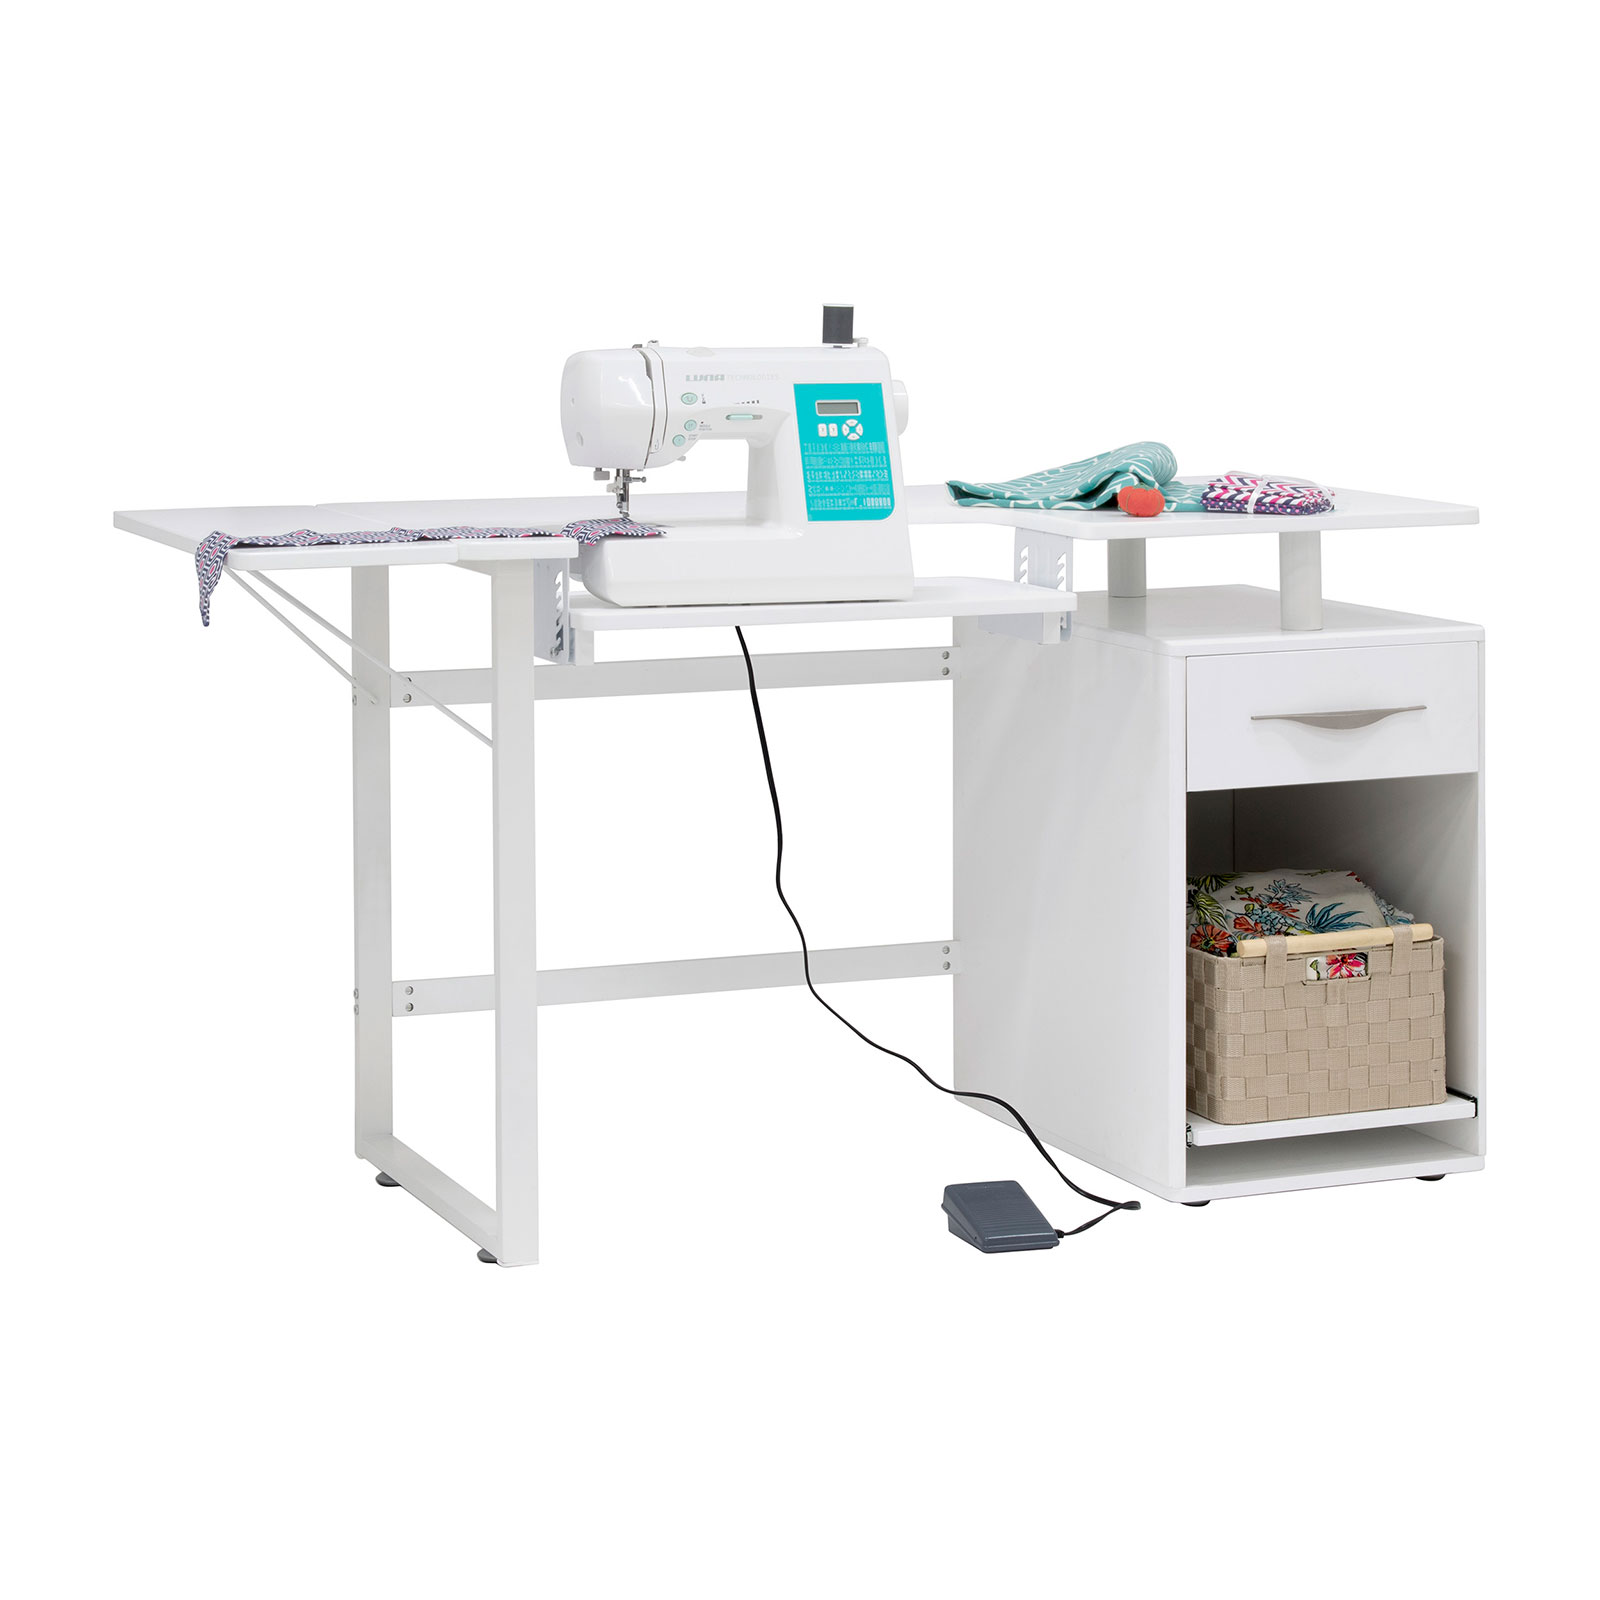 13397-Pro-Line-Sewing-Table-props1a